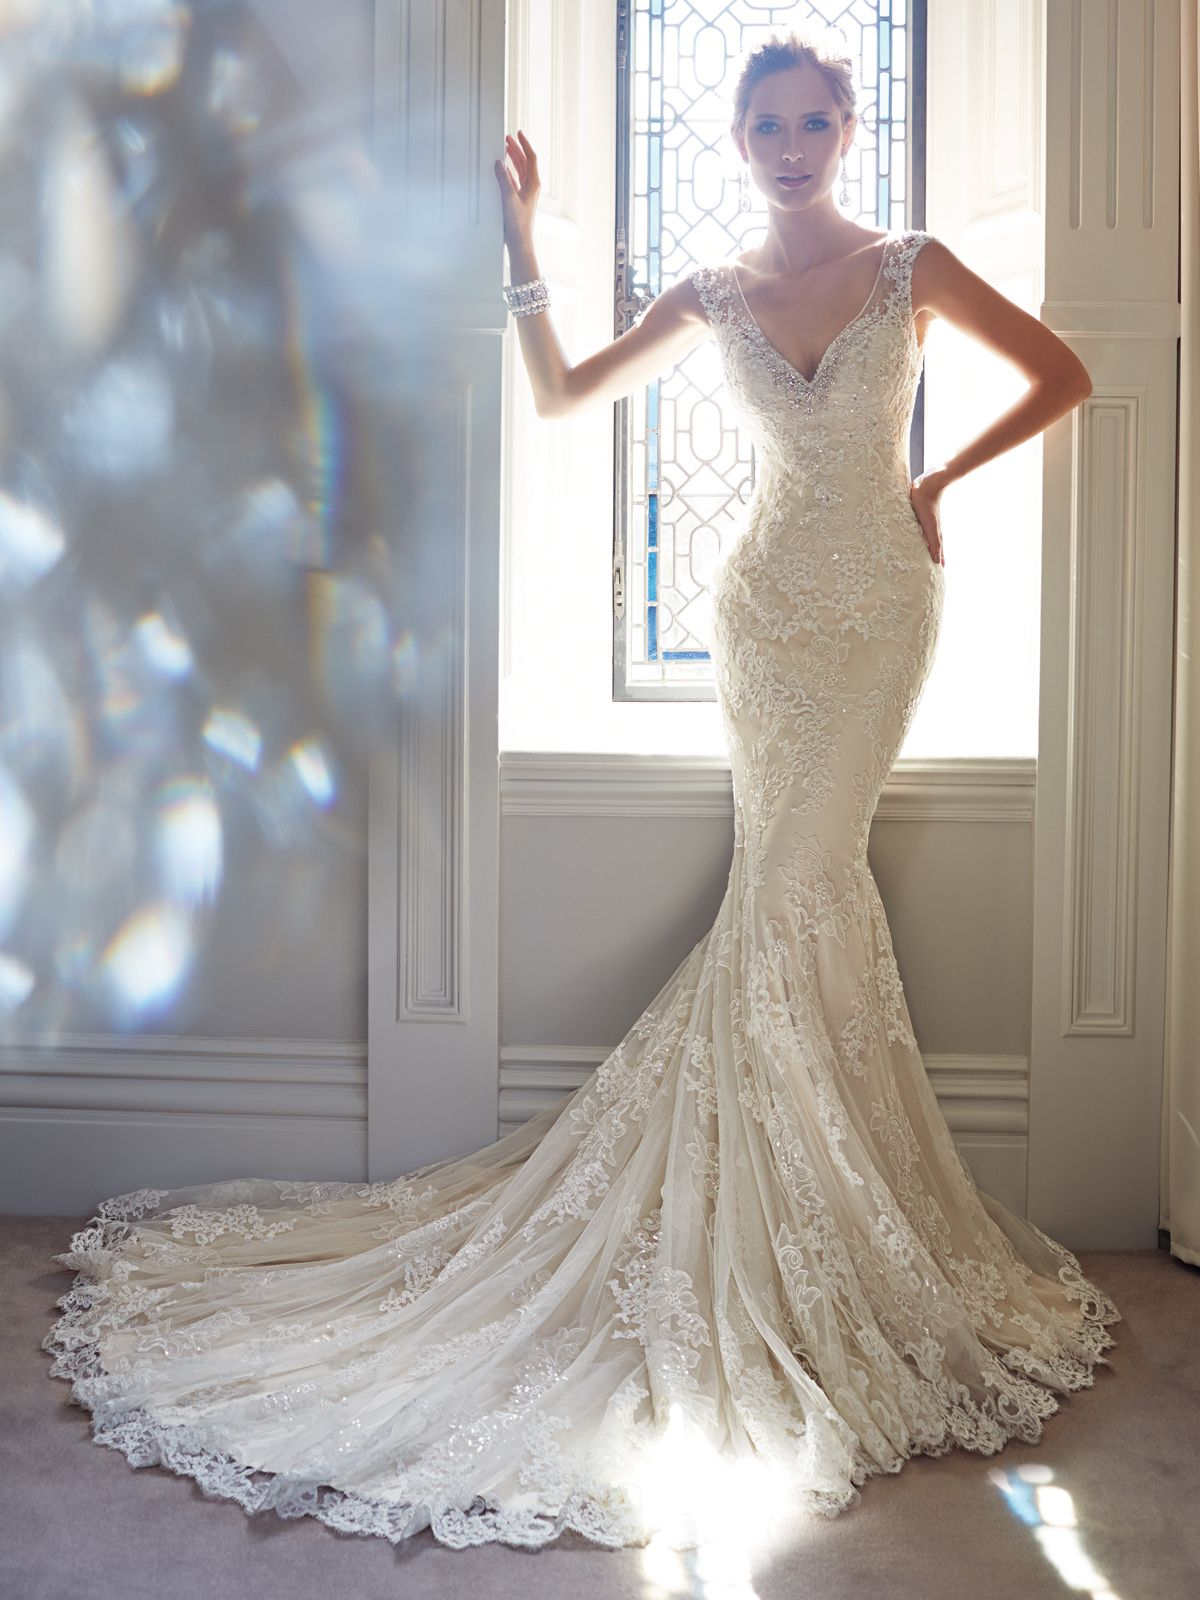 Wedding dresses collection u enhance your beauty and embrace